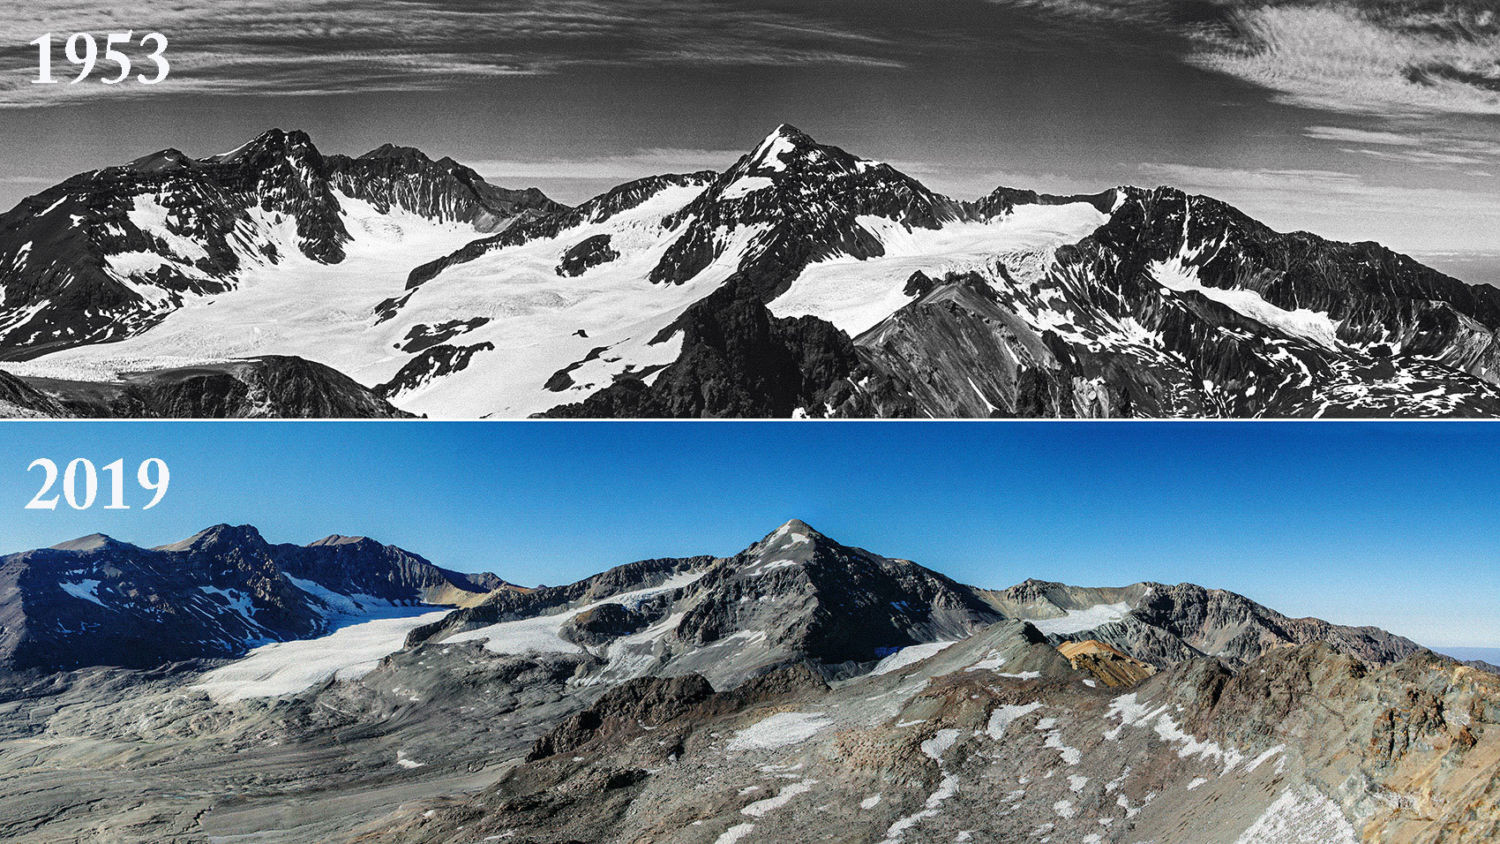 Andes Meltdown: New Insights Into Rapidly Retreating Glaciers - Yale E360